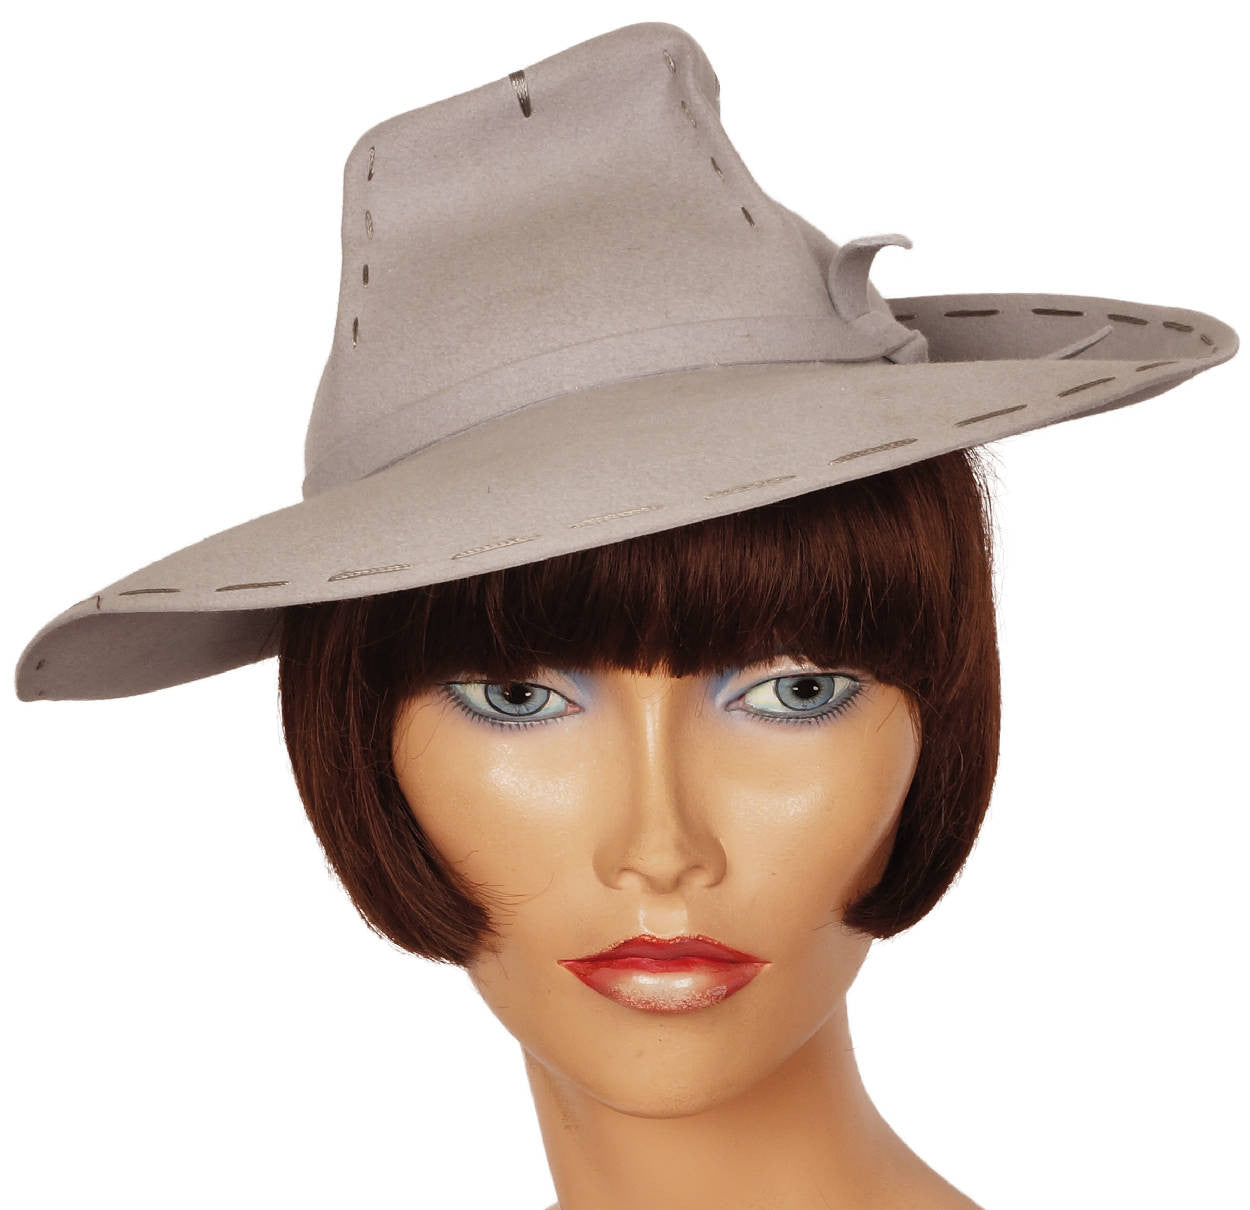 SOLD Vintage 1940s Womens Fedora Gray Felt Hat by Spencer Ladies Size bd0b2180934